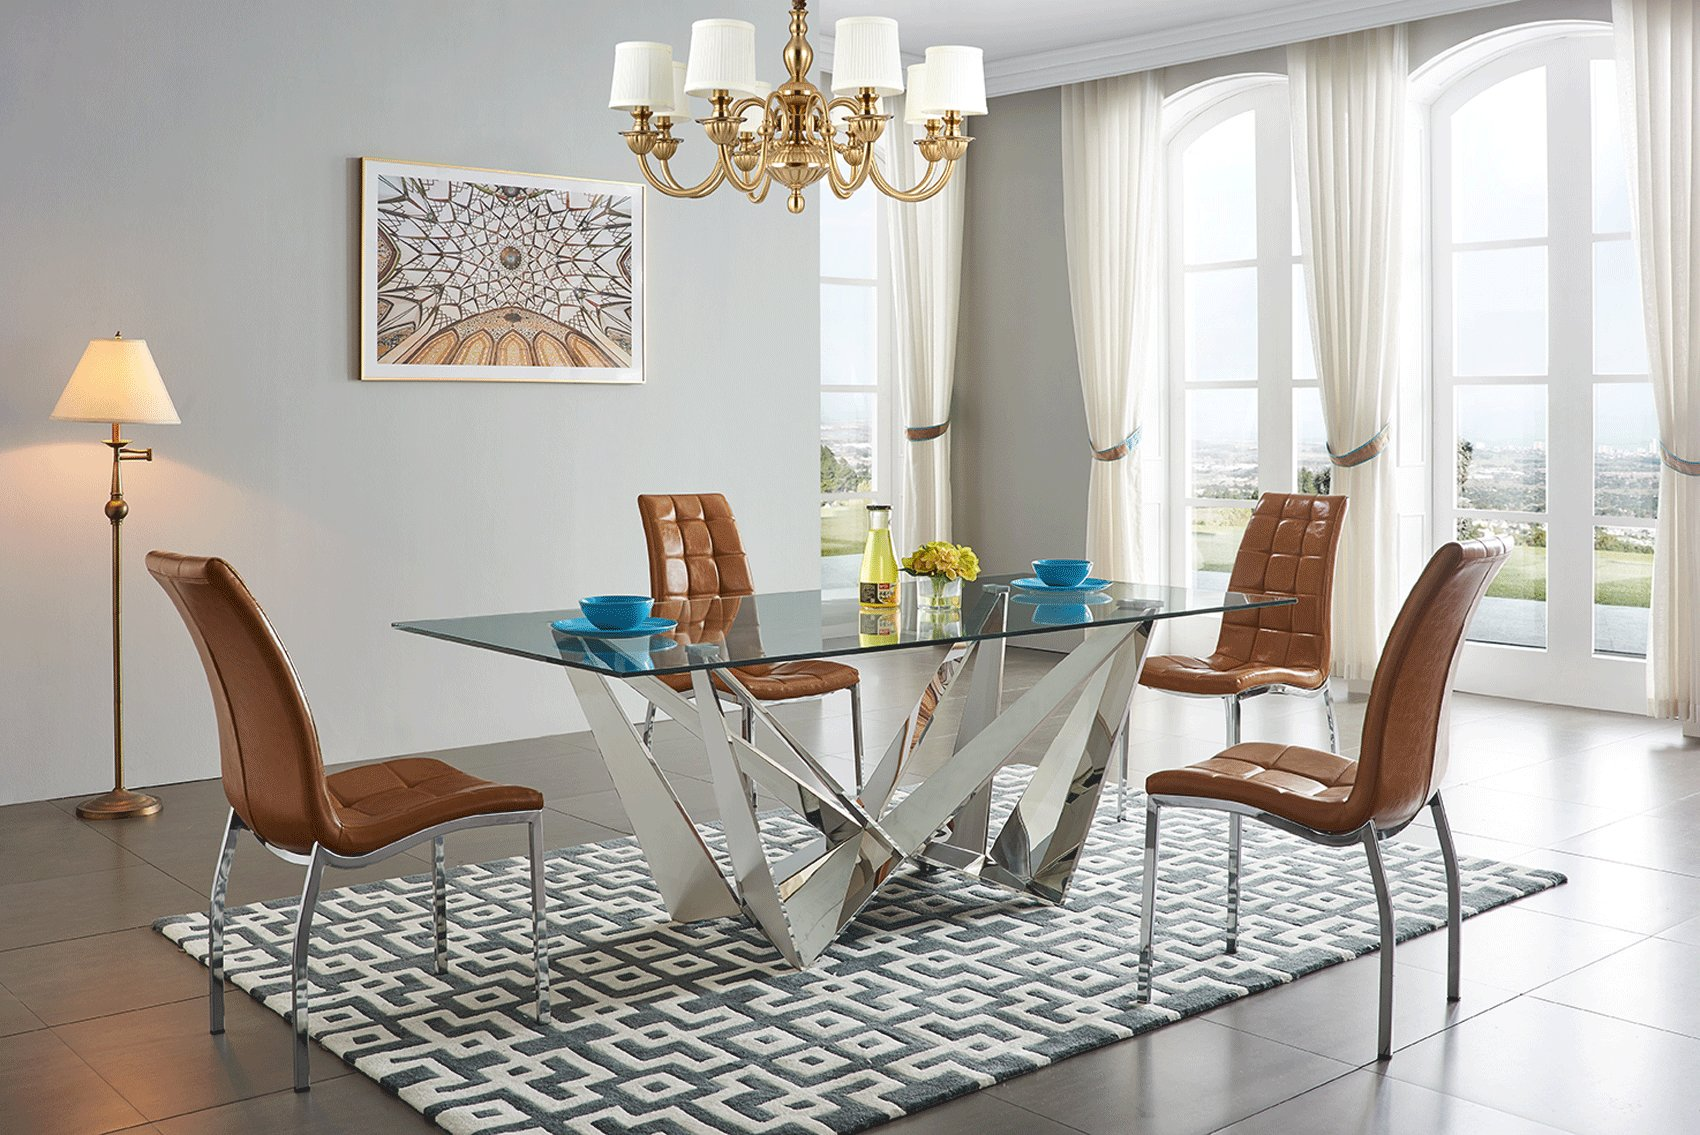 Admirable Exclusive Rectangular Glass Top Modern Dining Set Home Interior And Landscaping Ologienasavecom